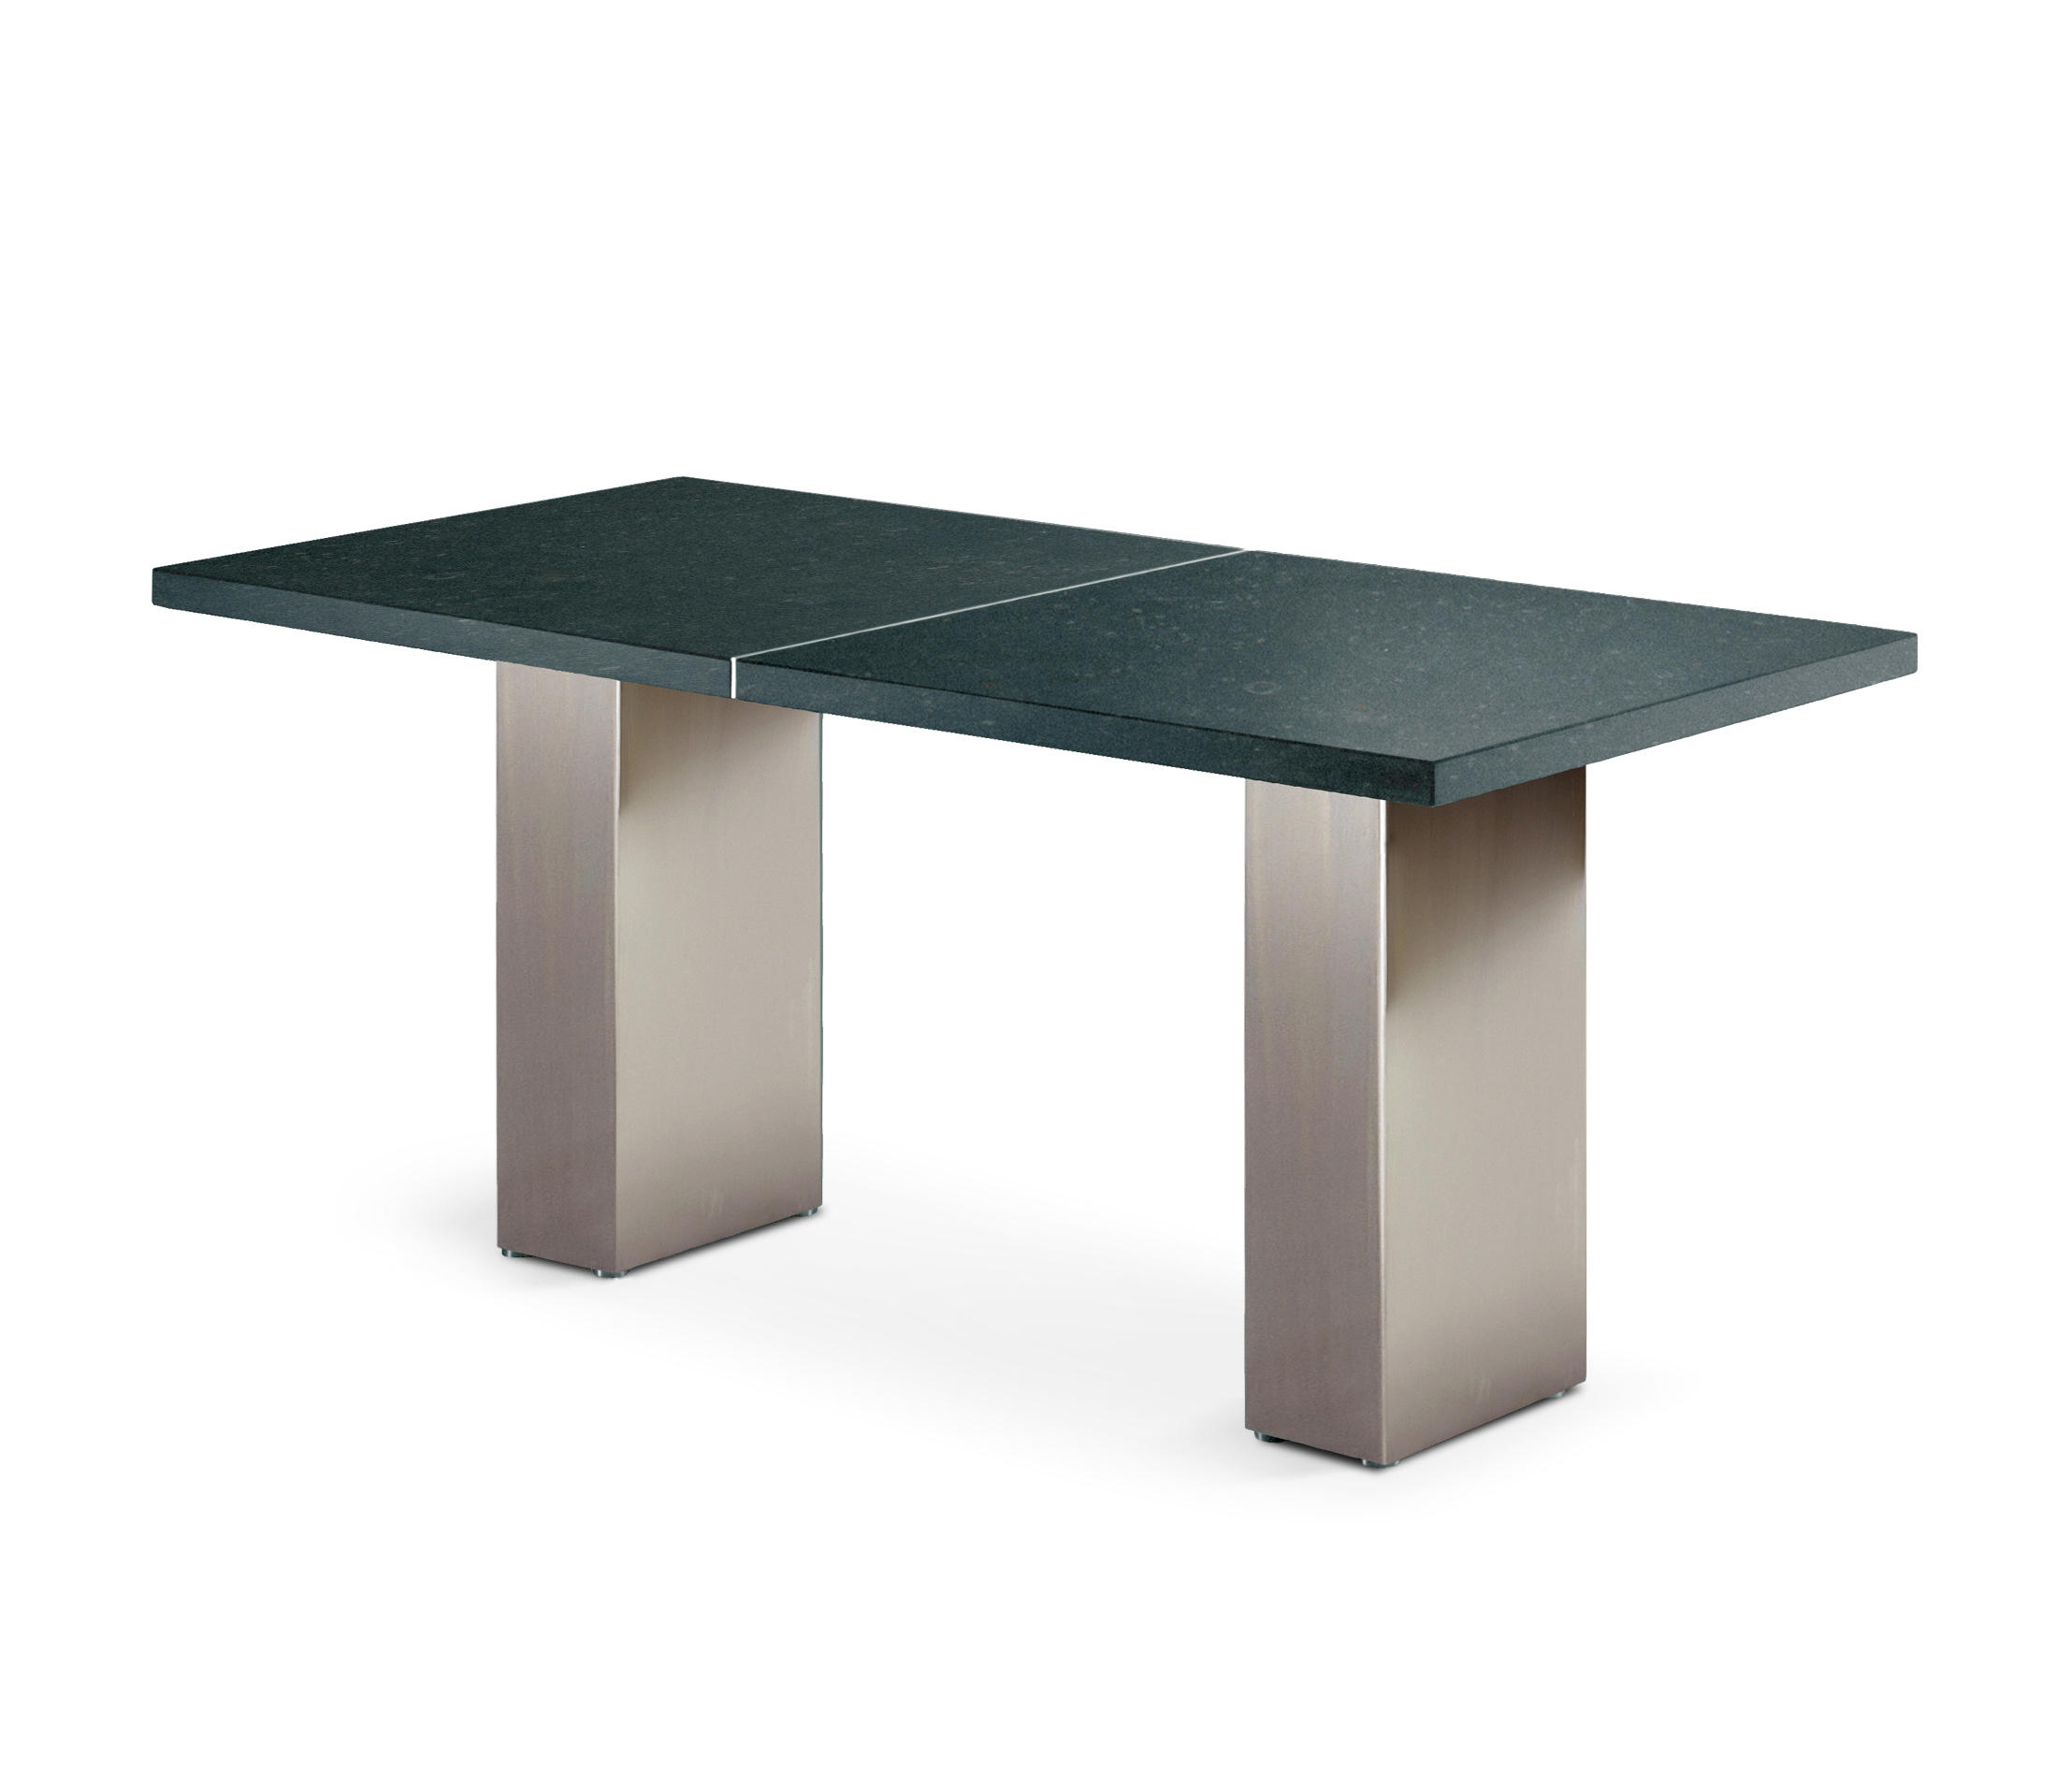 cima doble table 160 garten esstische von fueradentro architonic. Black Bedroom Furniture Sets. Home Design Ideas